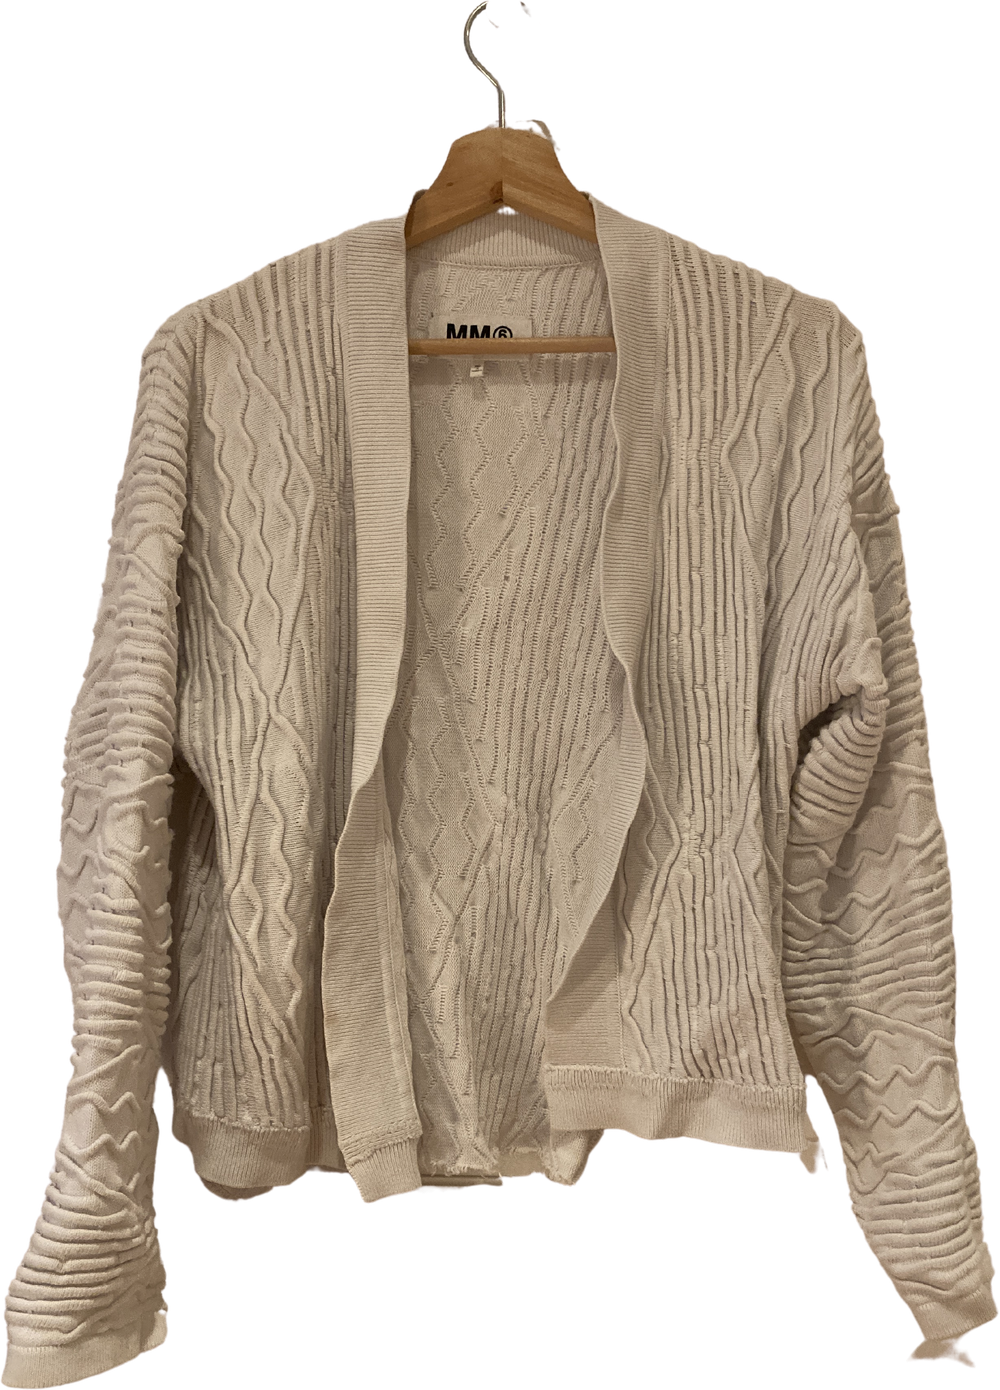 White Cotton Mm6 Maison Margiela Cardigan